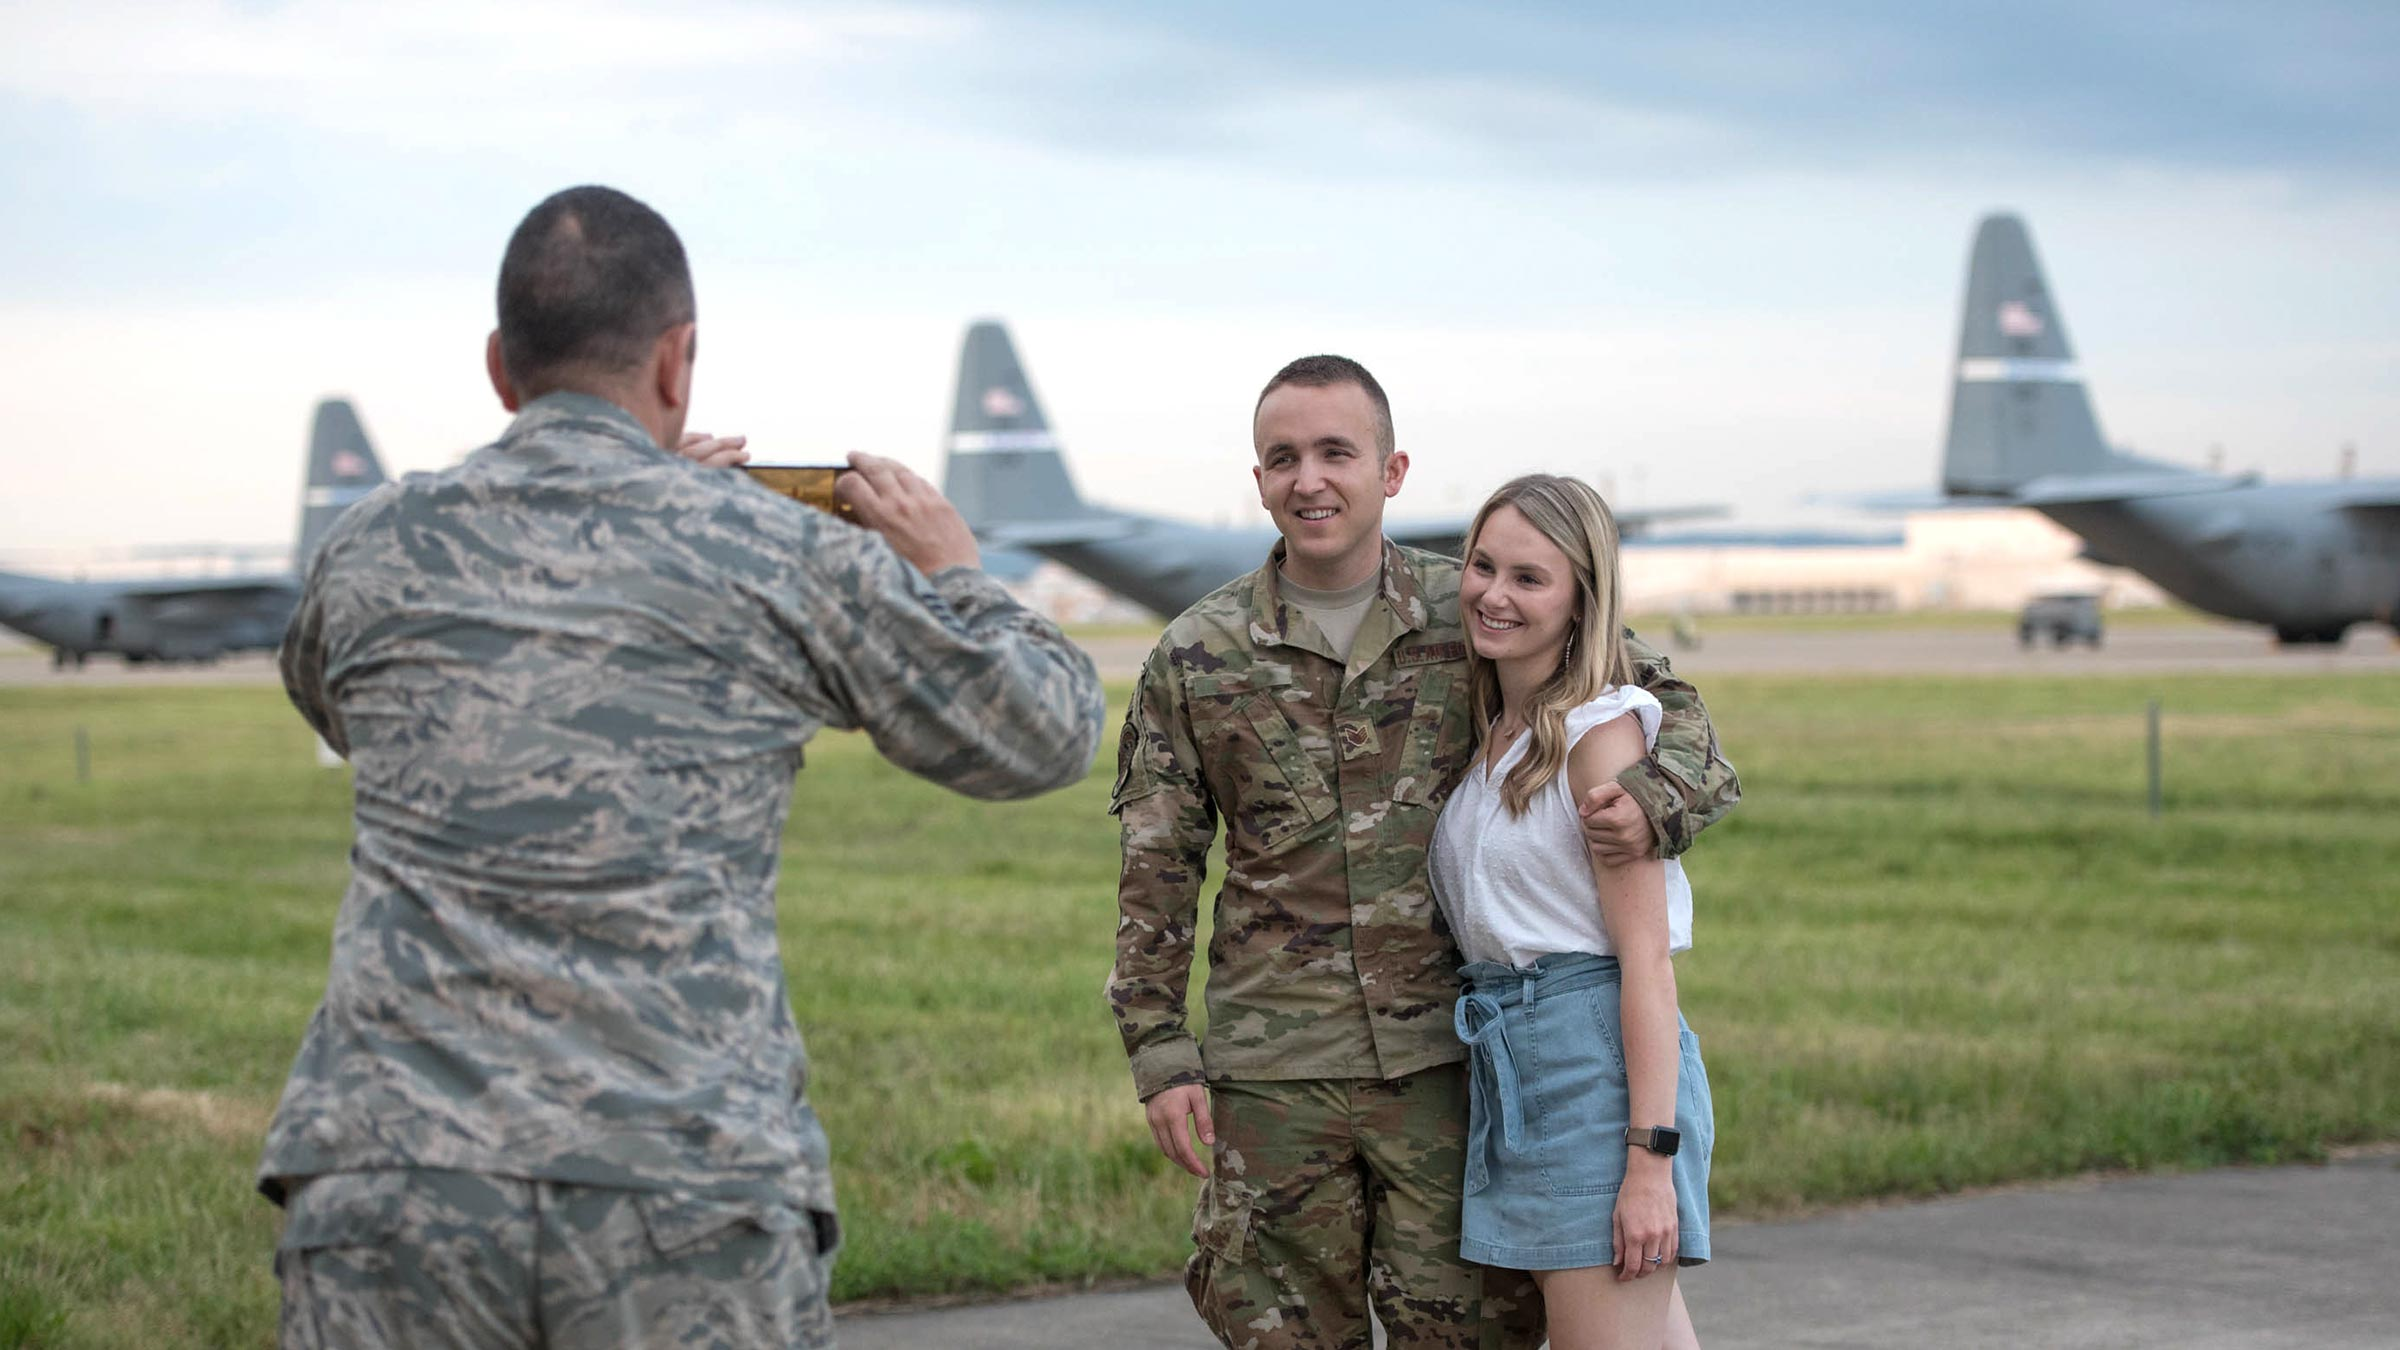 Service member and girlfriend get photo taken before deployment